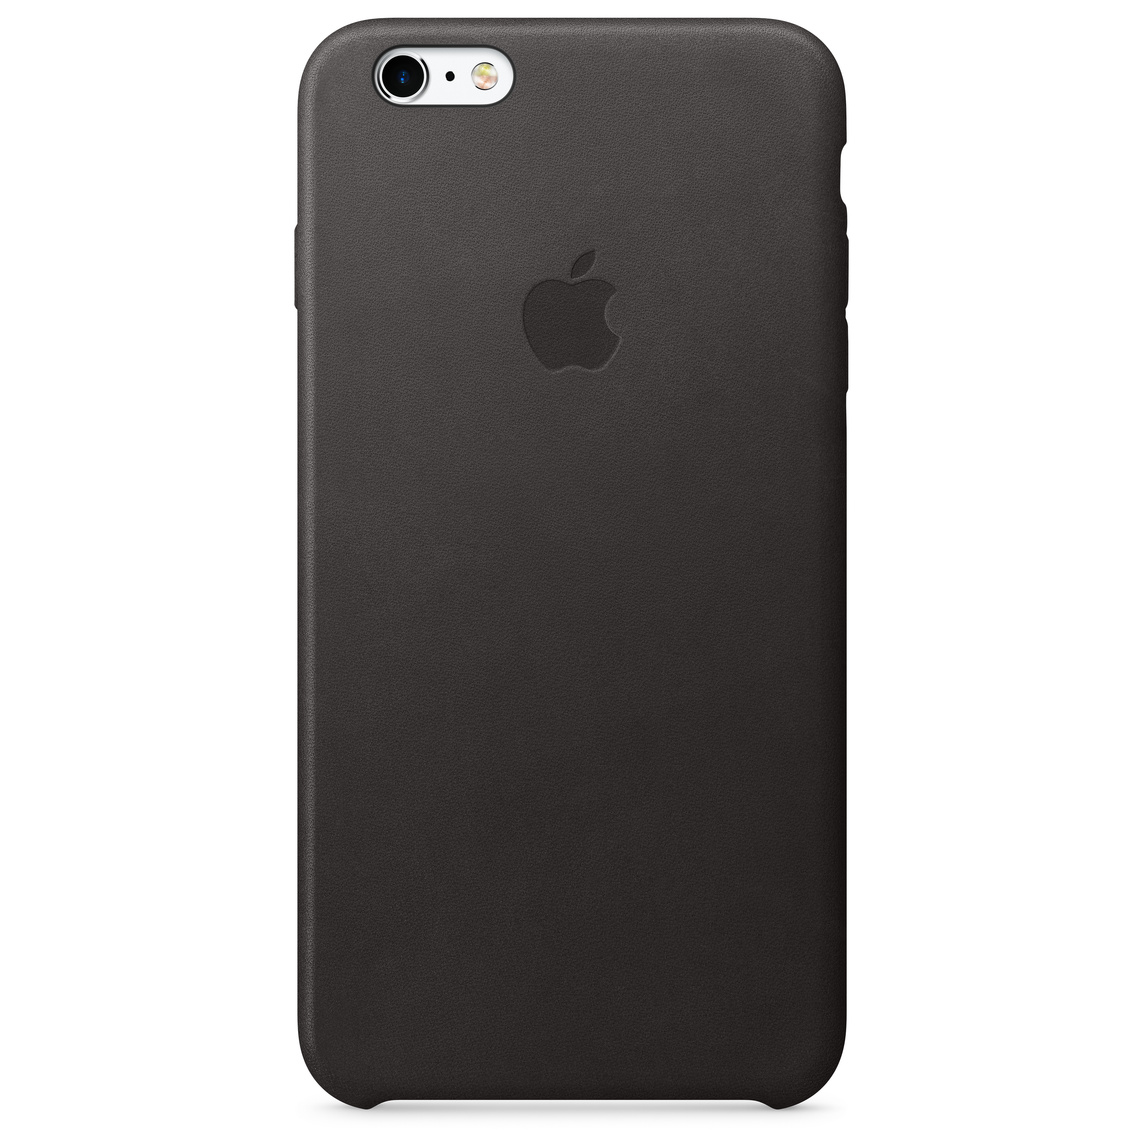 outlet store sale 033bf 31608 iPhone 6 Plus / 6s Plus Leather Case - Black